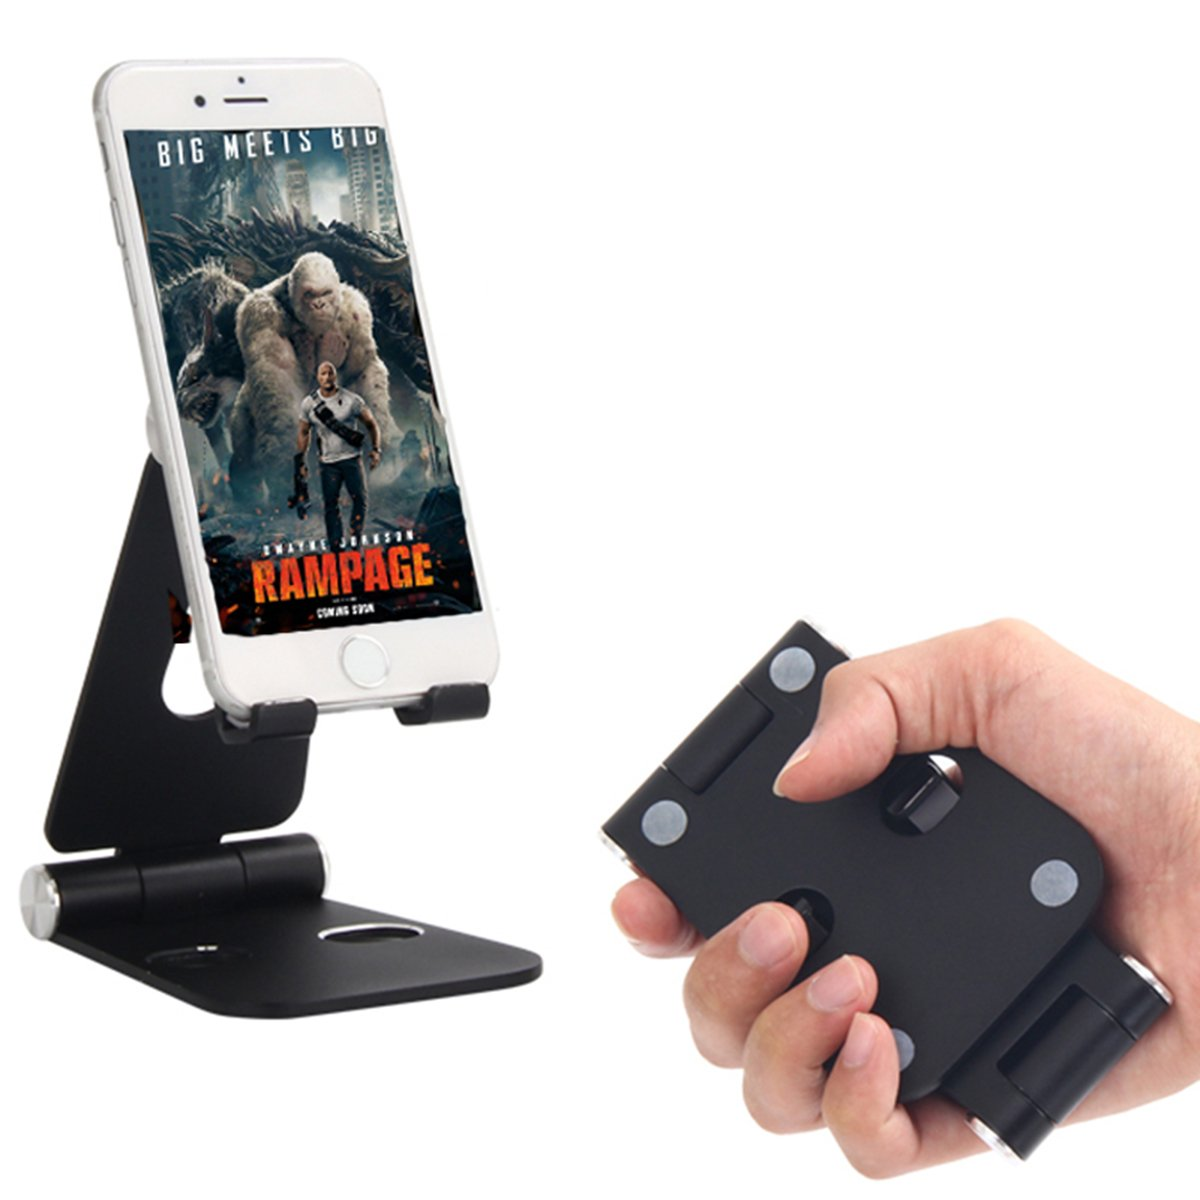 Desktop Stands. Double Aluminum Stand.Table and All Smartphone Device with Durable, Adjustable Panels. Iwacth Charging Stand. Adjustable Aluminum Portable Stand for iPhone/Ipad/Laptops,ect (Black)